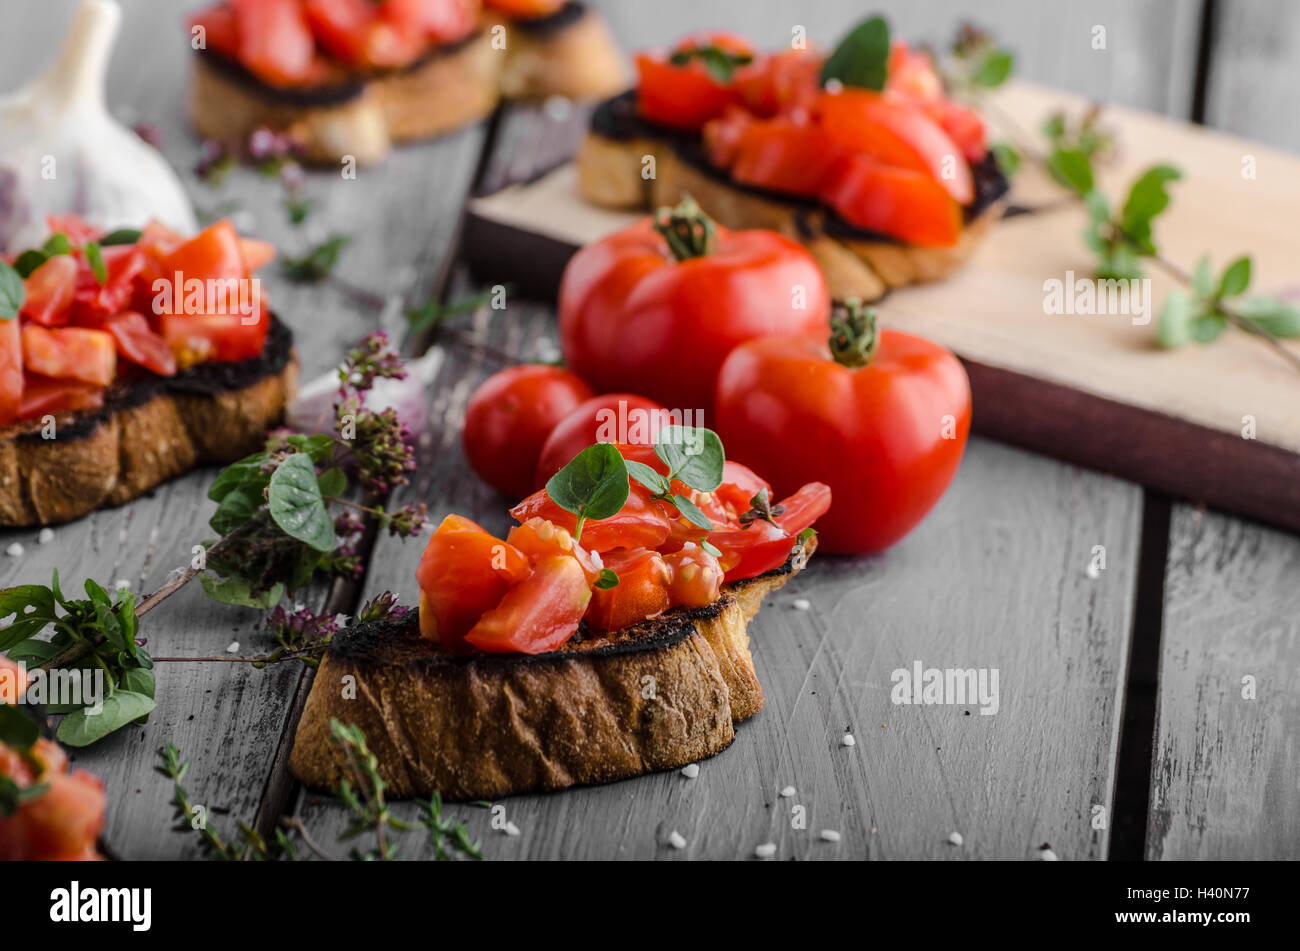 Canapé Bio Canapé Czech Food Stock Photos Canapé Czech Food Stock Images